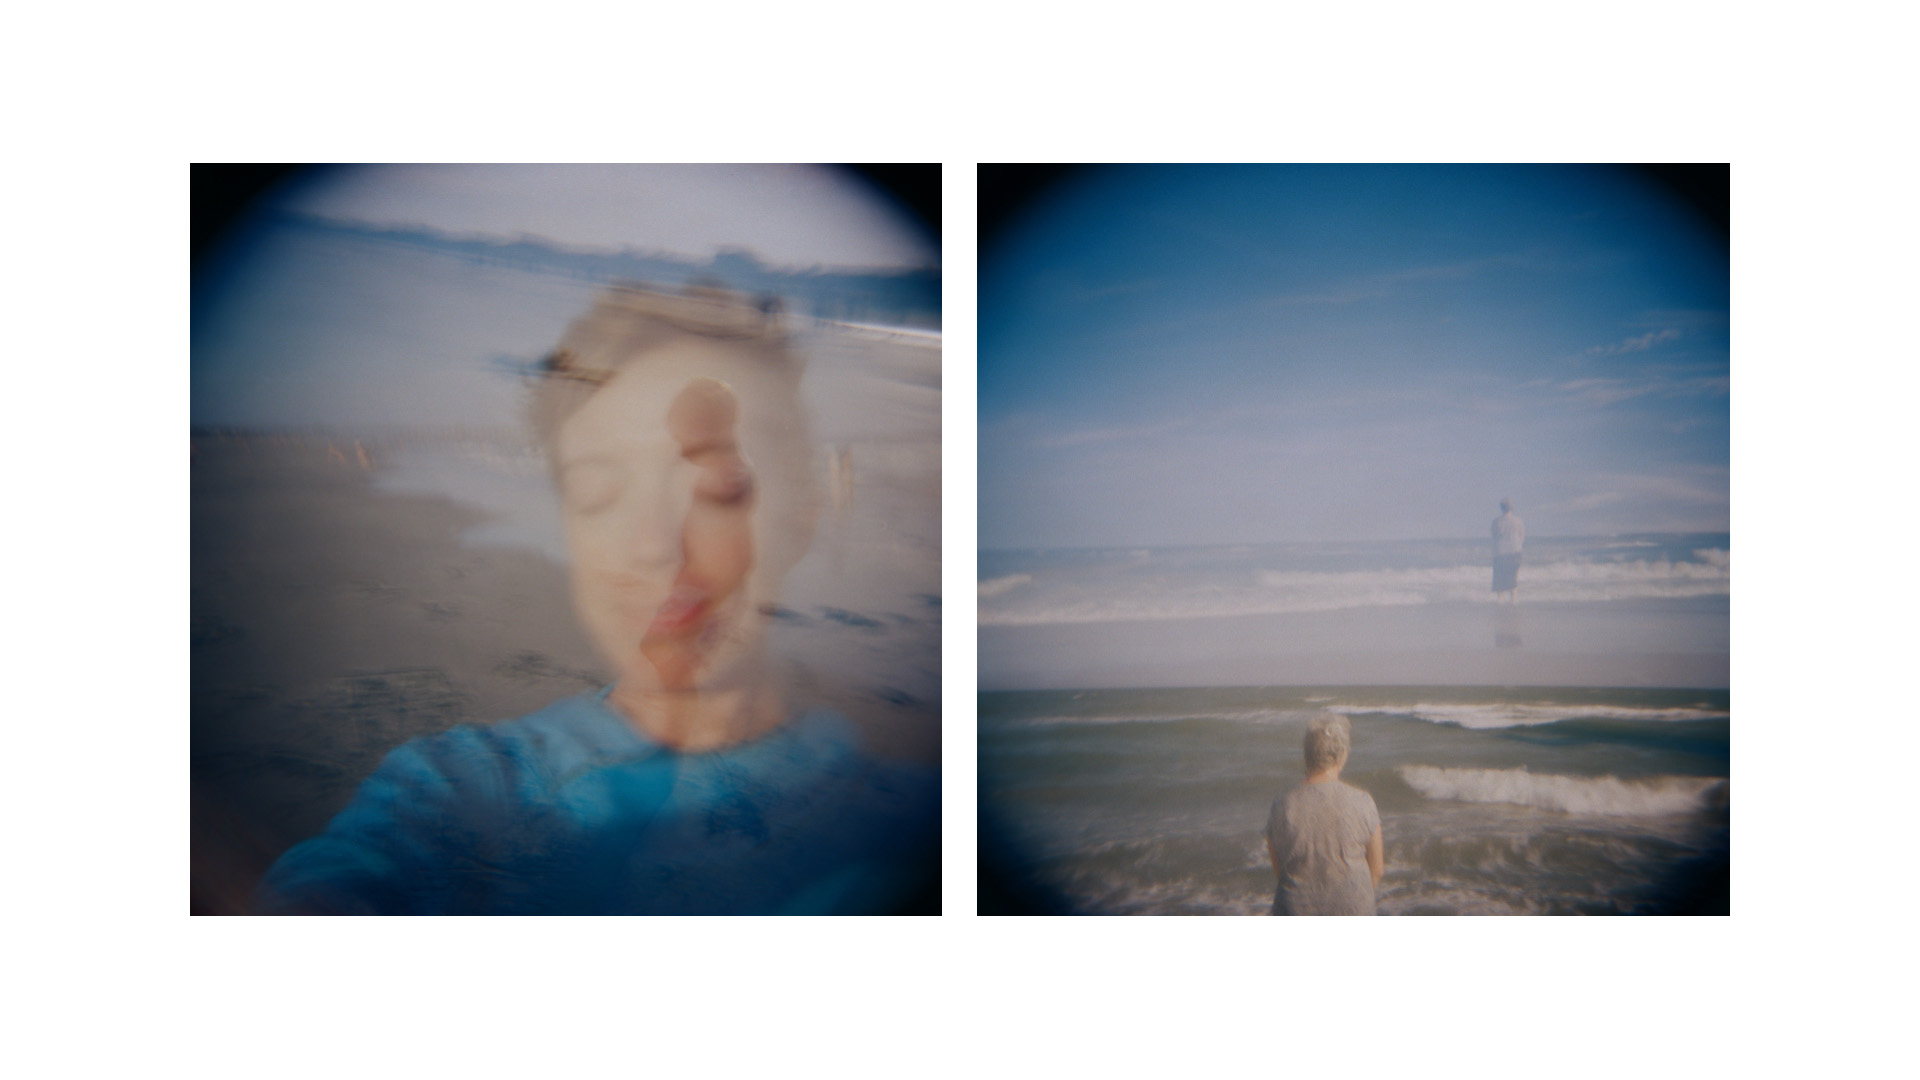 double-exposure images of figures at the beach // (c) jocelynmathewes.com